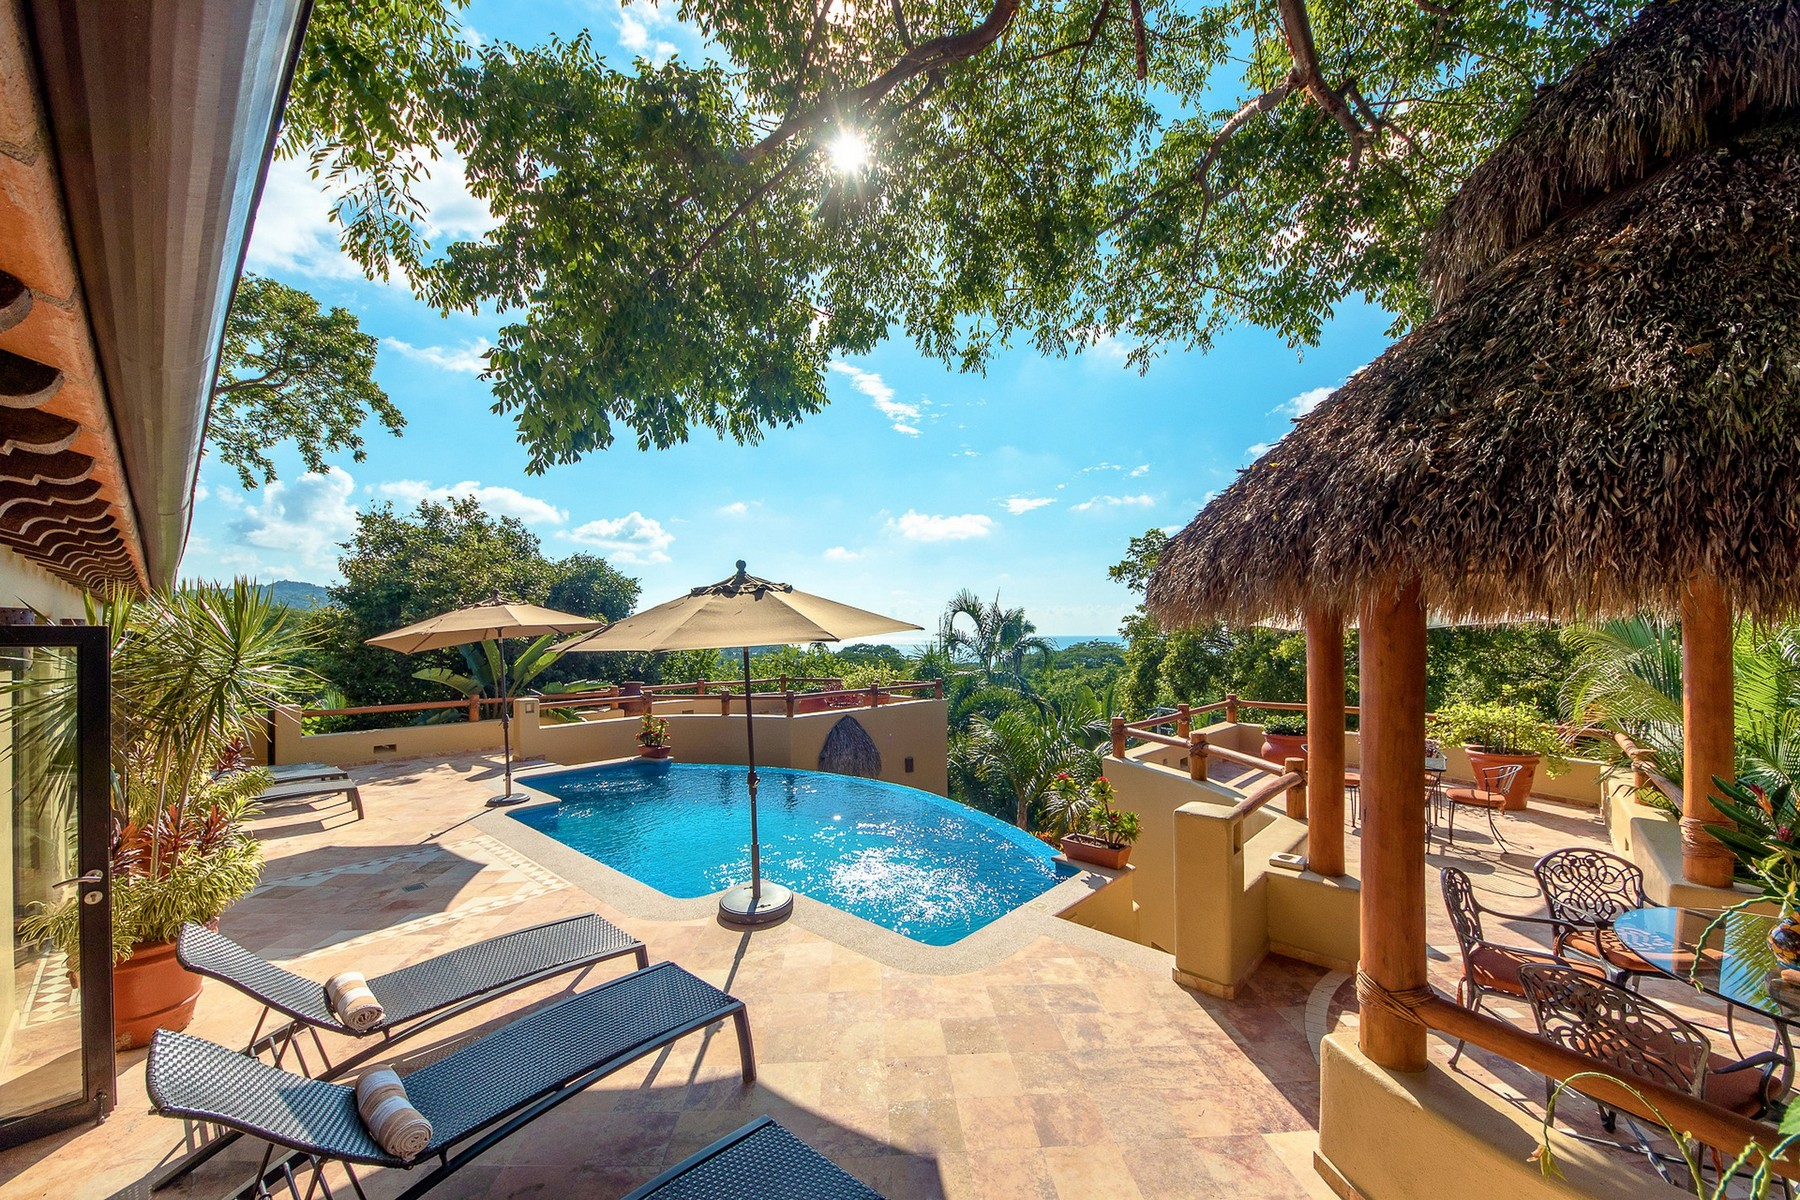 Additional photo for property listing at Casa Sweet Water, San Pancho Nayarit Calle Africa 556 Other Nayarit, Nayarit 63729 Mexico